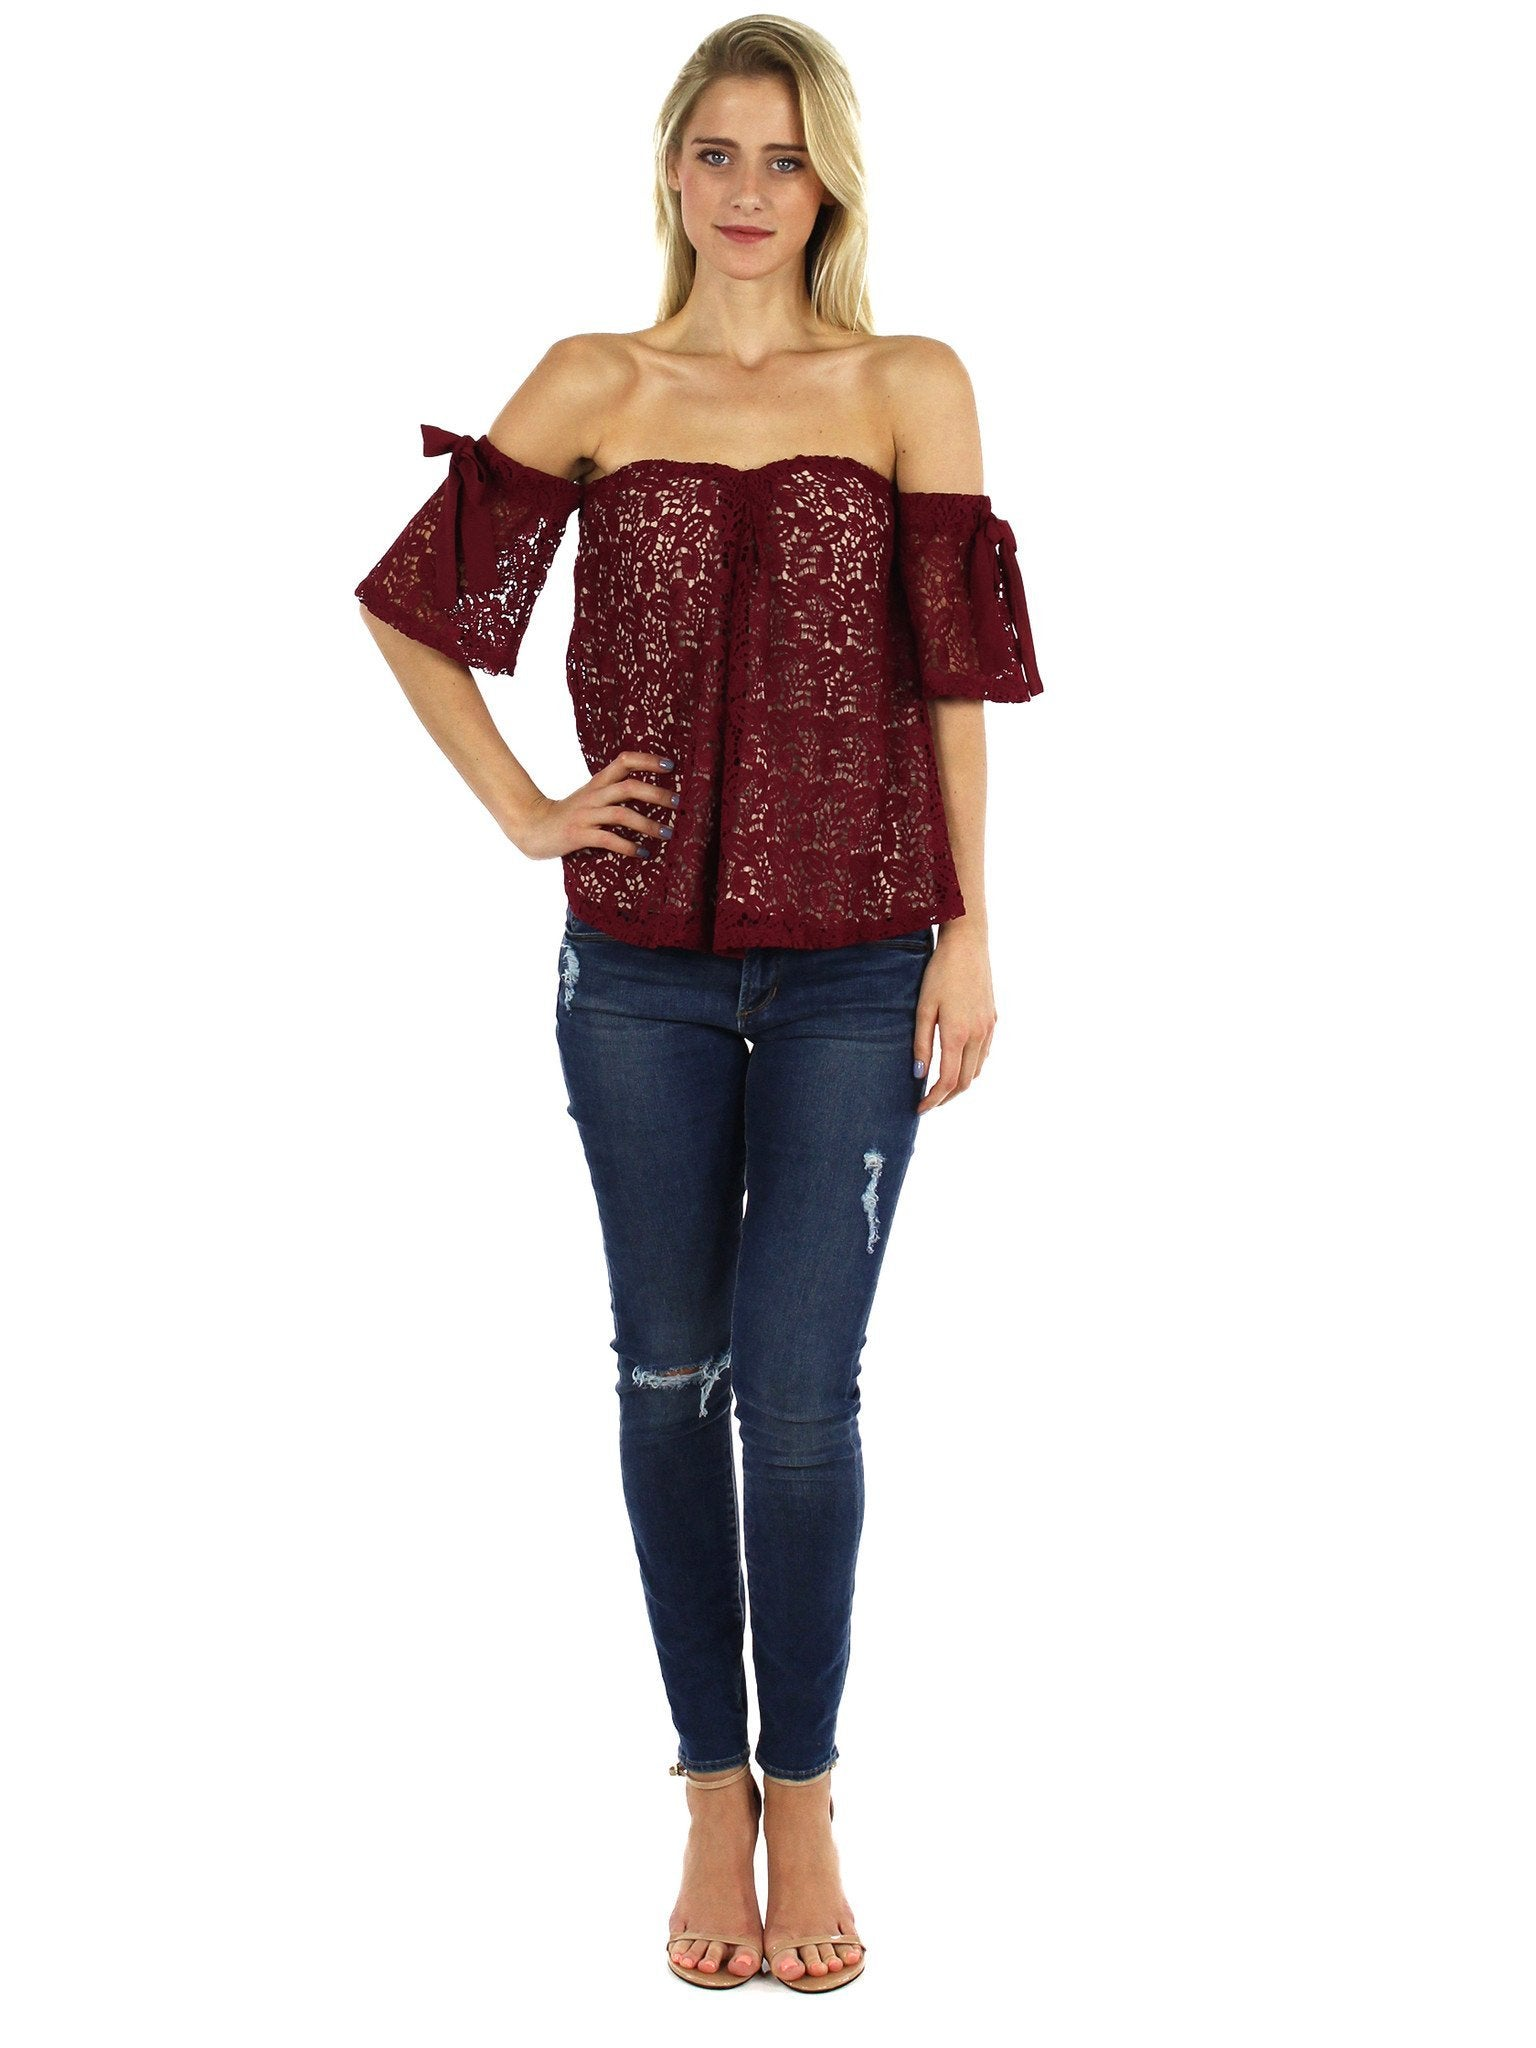 Women wearing a top rental from Moon River called Off Shoulder Lace Top